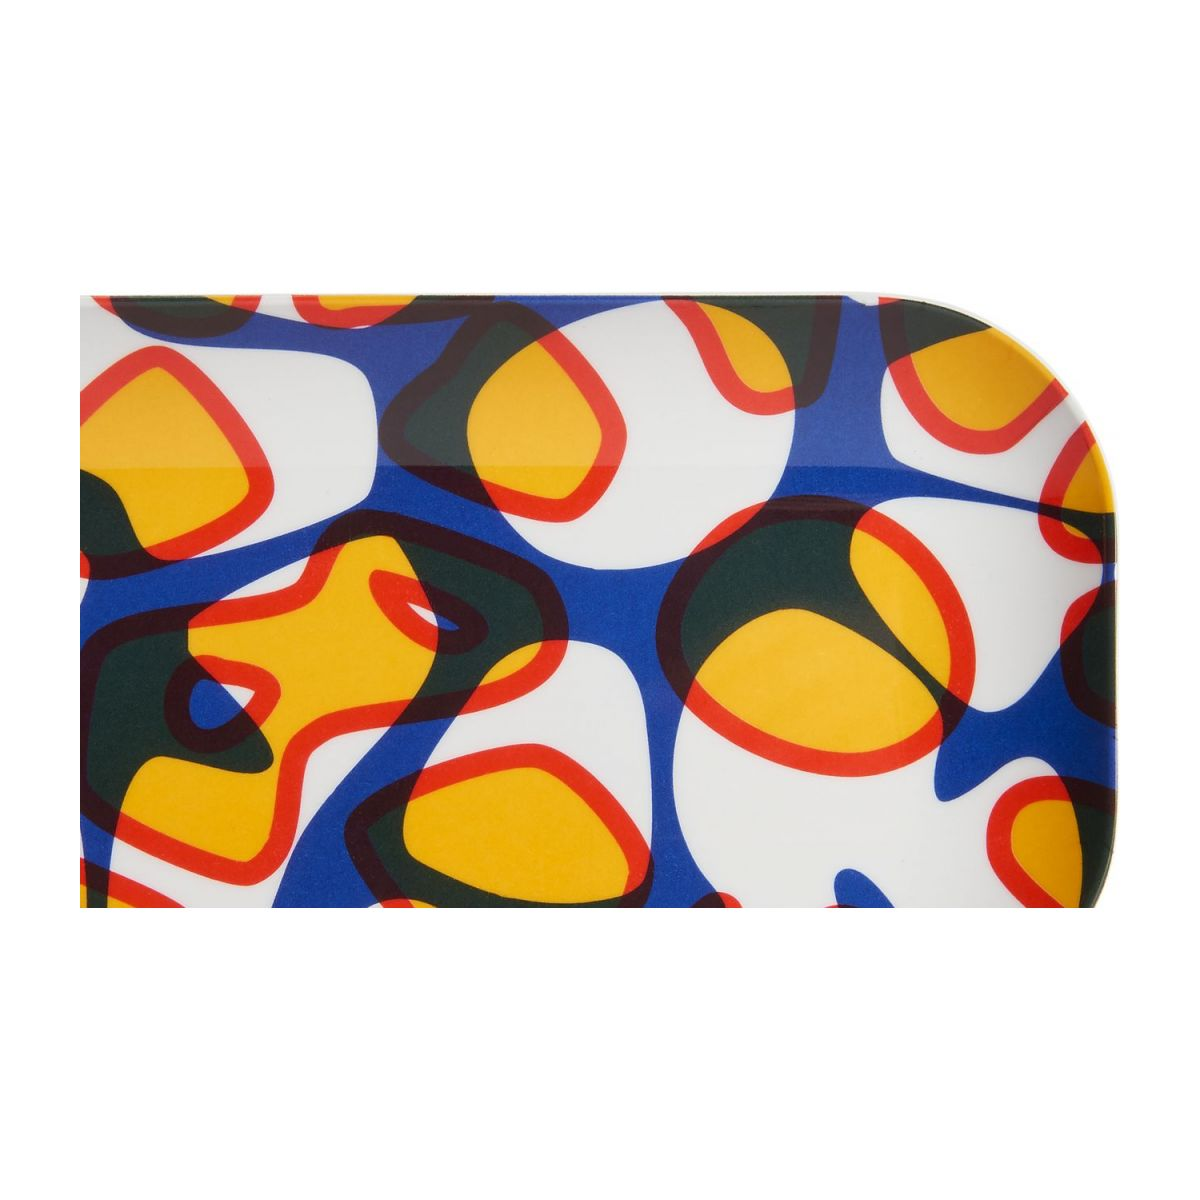 Tray made of melamine 12x25cm, with patterns n°5